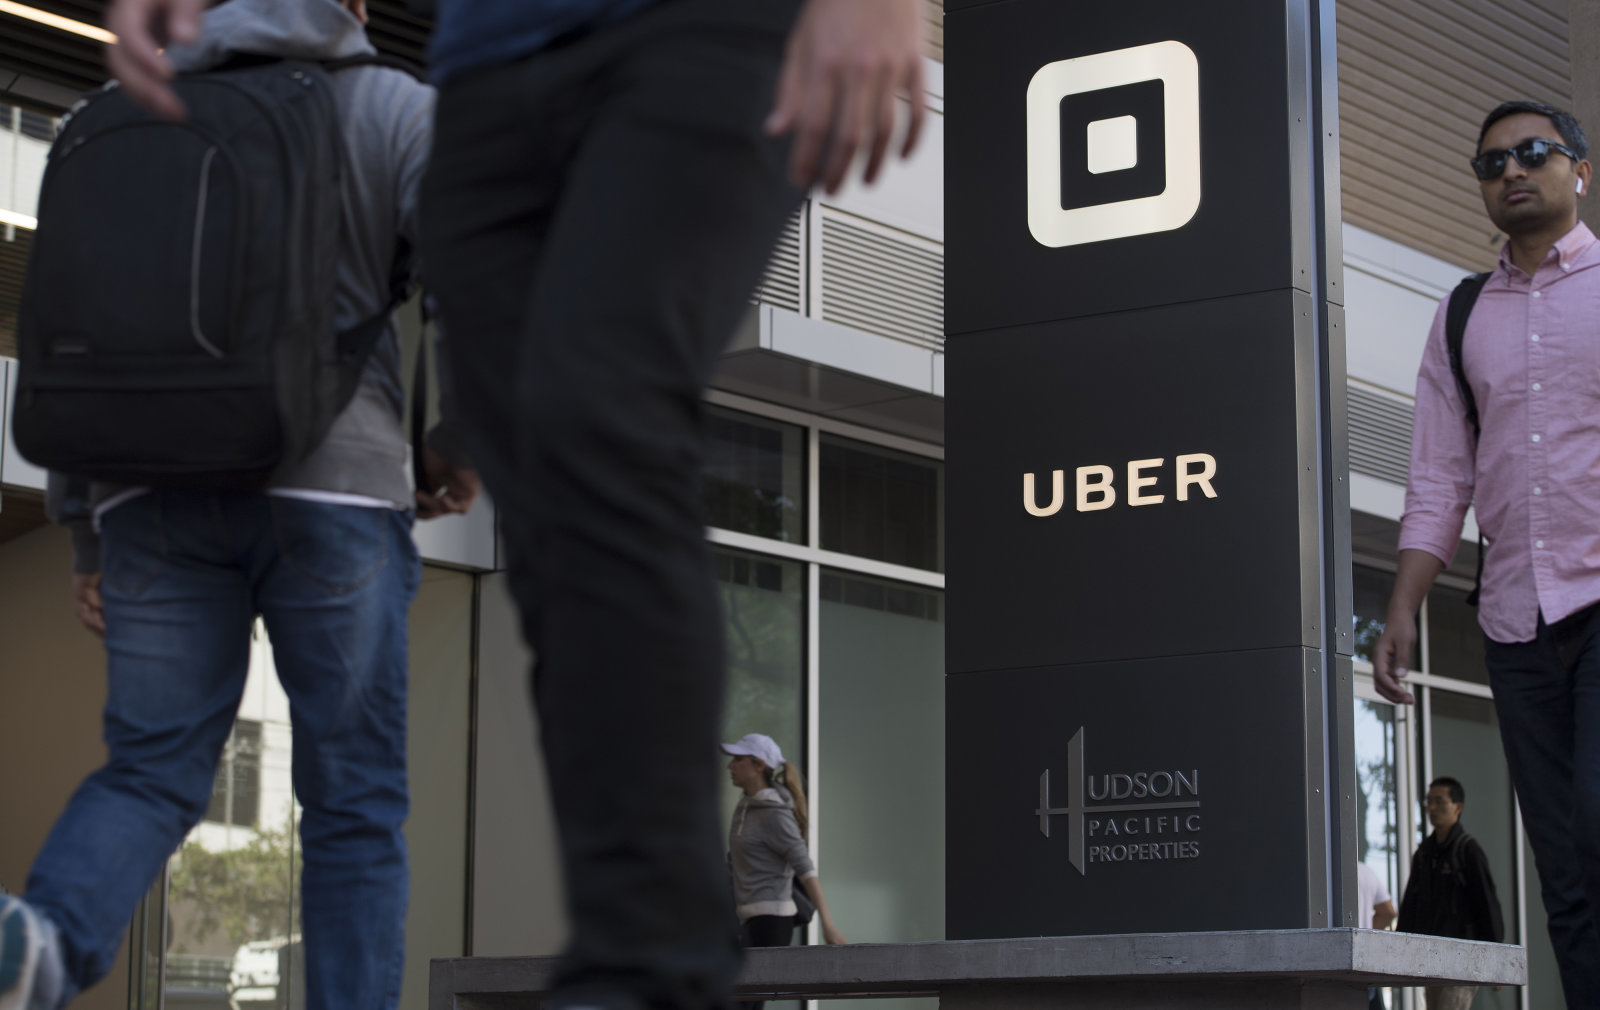 Pedestrians walk past the Uber Technologies Inc. headquarters building in San Francisco, California, U.S., on Wednesday, June 21, 2017. Travis Kalanick has resigned from his job leading Uber Technologies Inc., giving up his effort to hold onto power as a torrent of self-inflicted scandals enveloped him and the global ride-hailing leviathan he co-founded. Photographer: David Paul Morris/Bloomberg via Getty Images